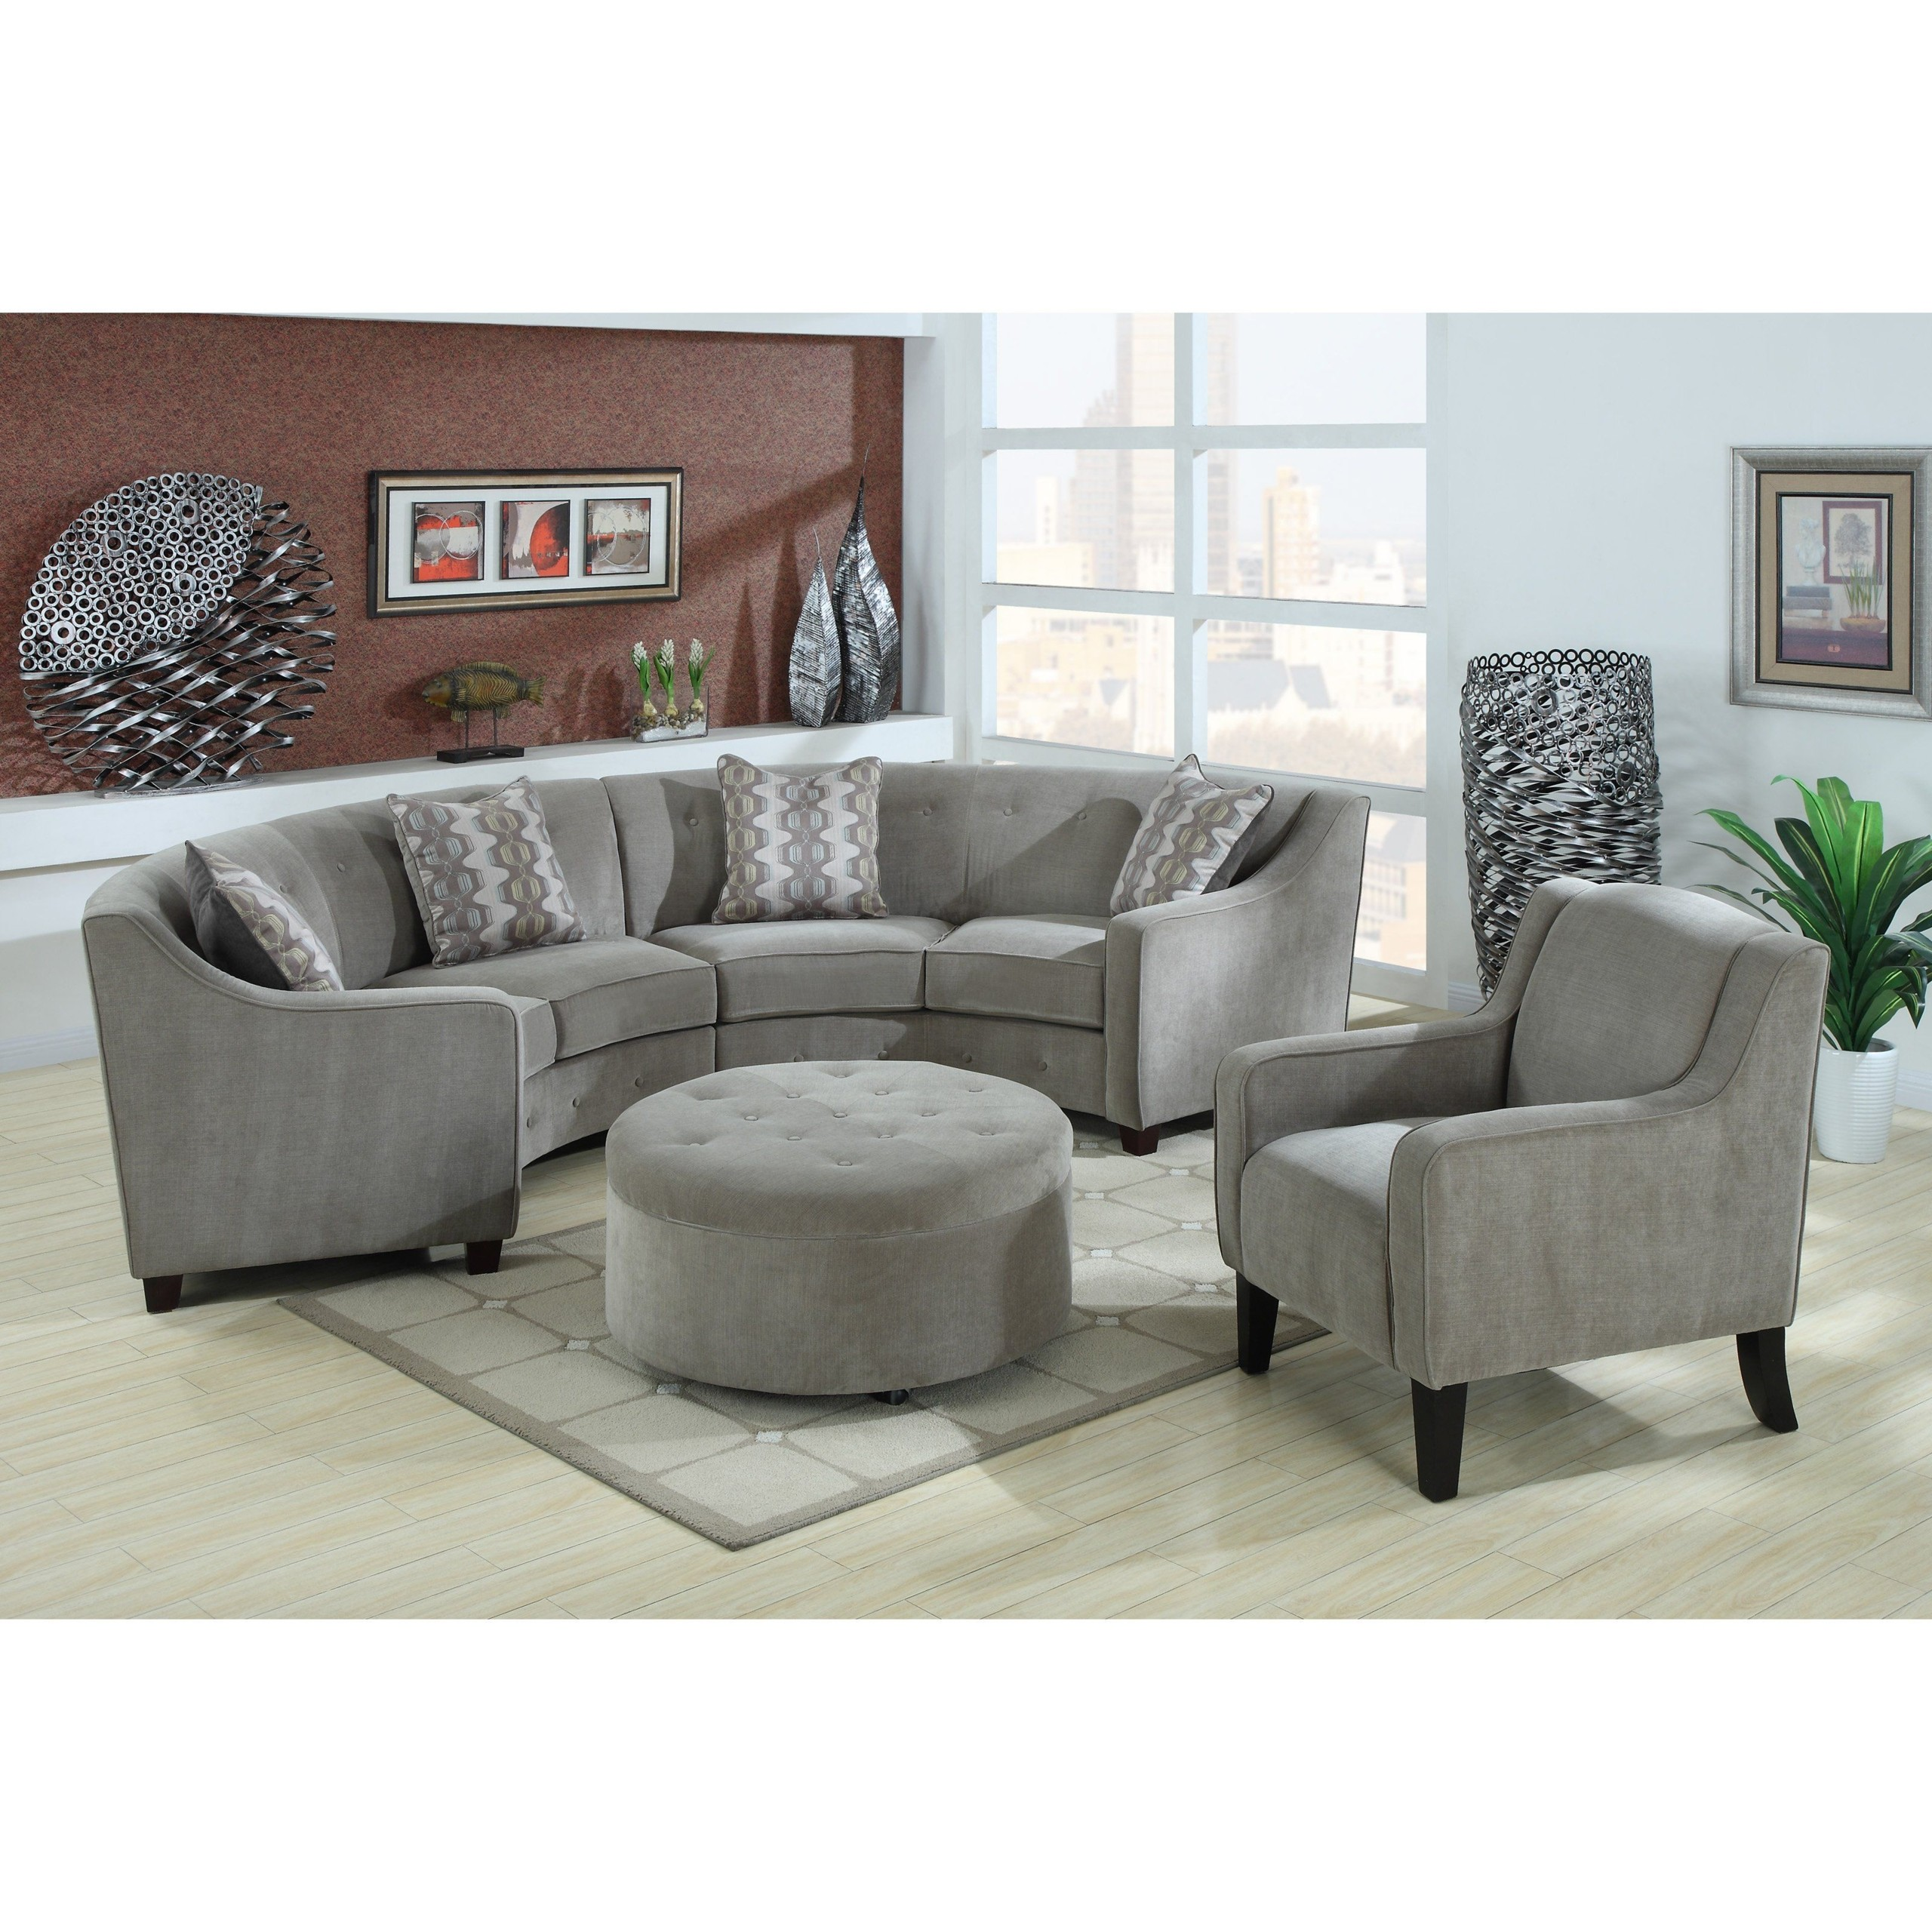 Exceptionnel Bundle 2 Pieces Small Curved Sectional Sofa